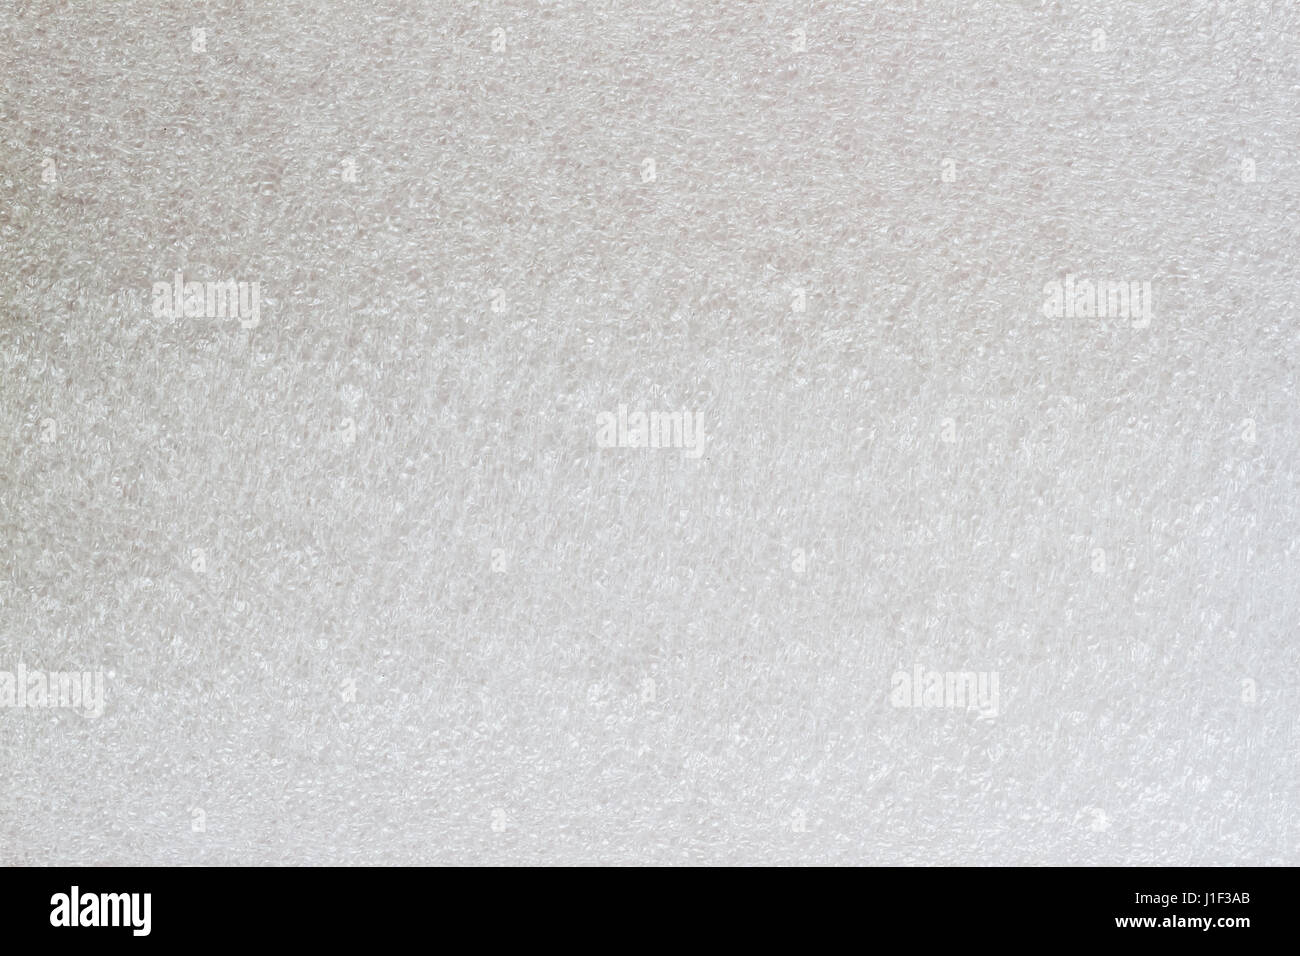 texture sponge closeup background stockfotos texture sponge closeup background bilder alamy. Black Bedroom Furniture Sets. Home Design Ideas